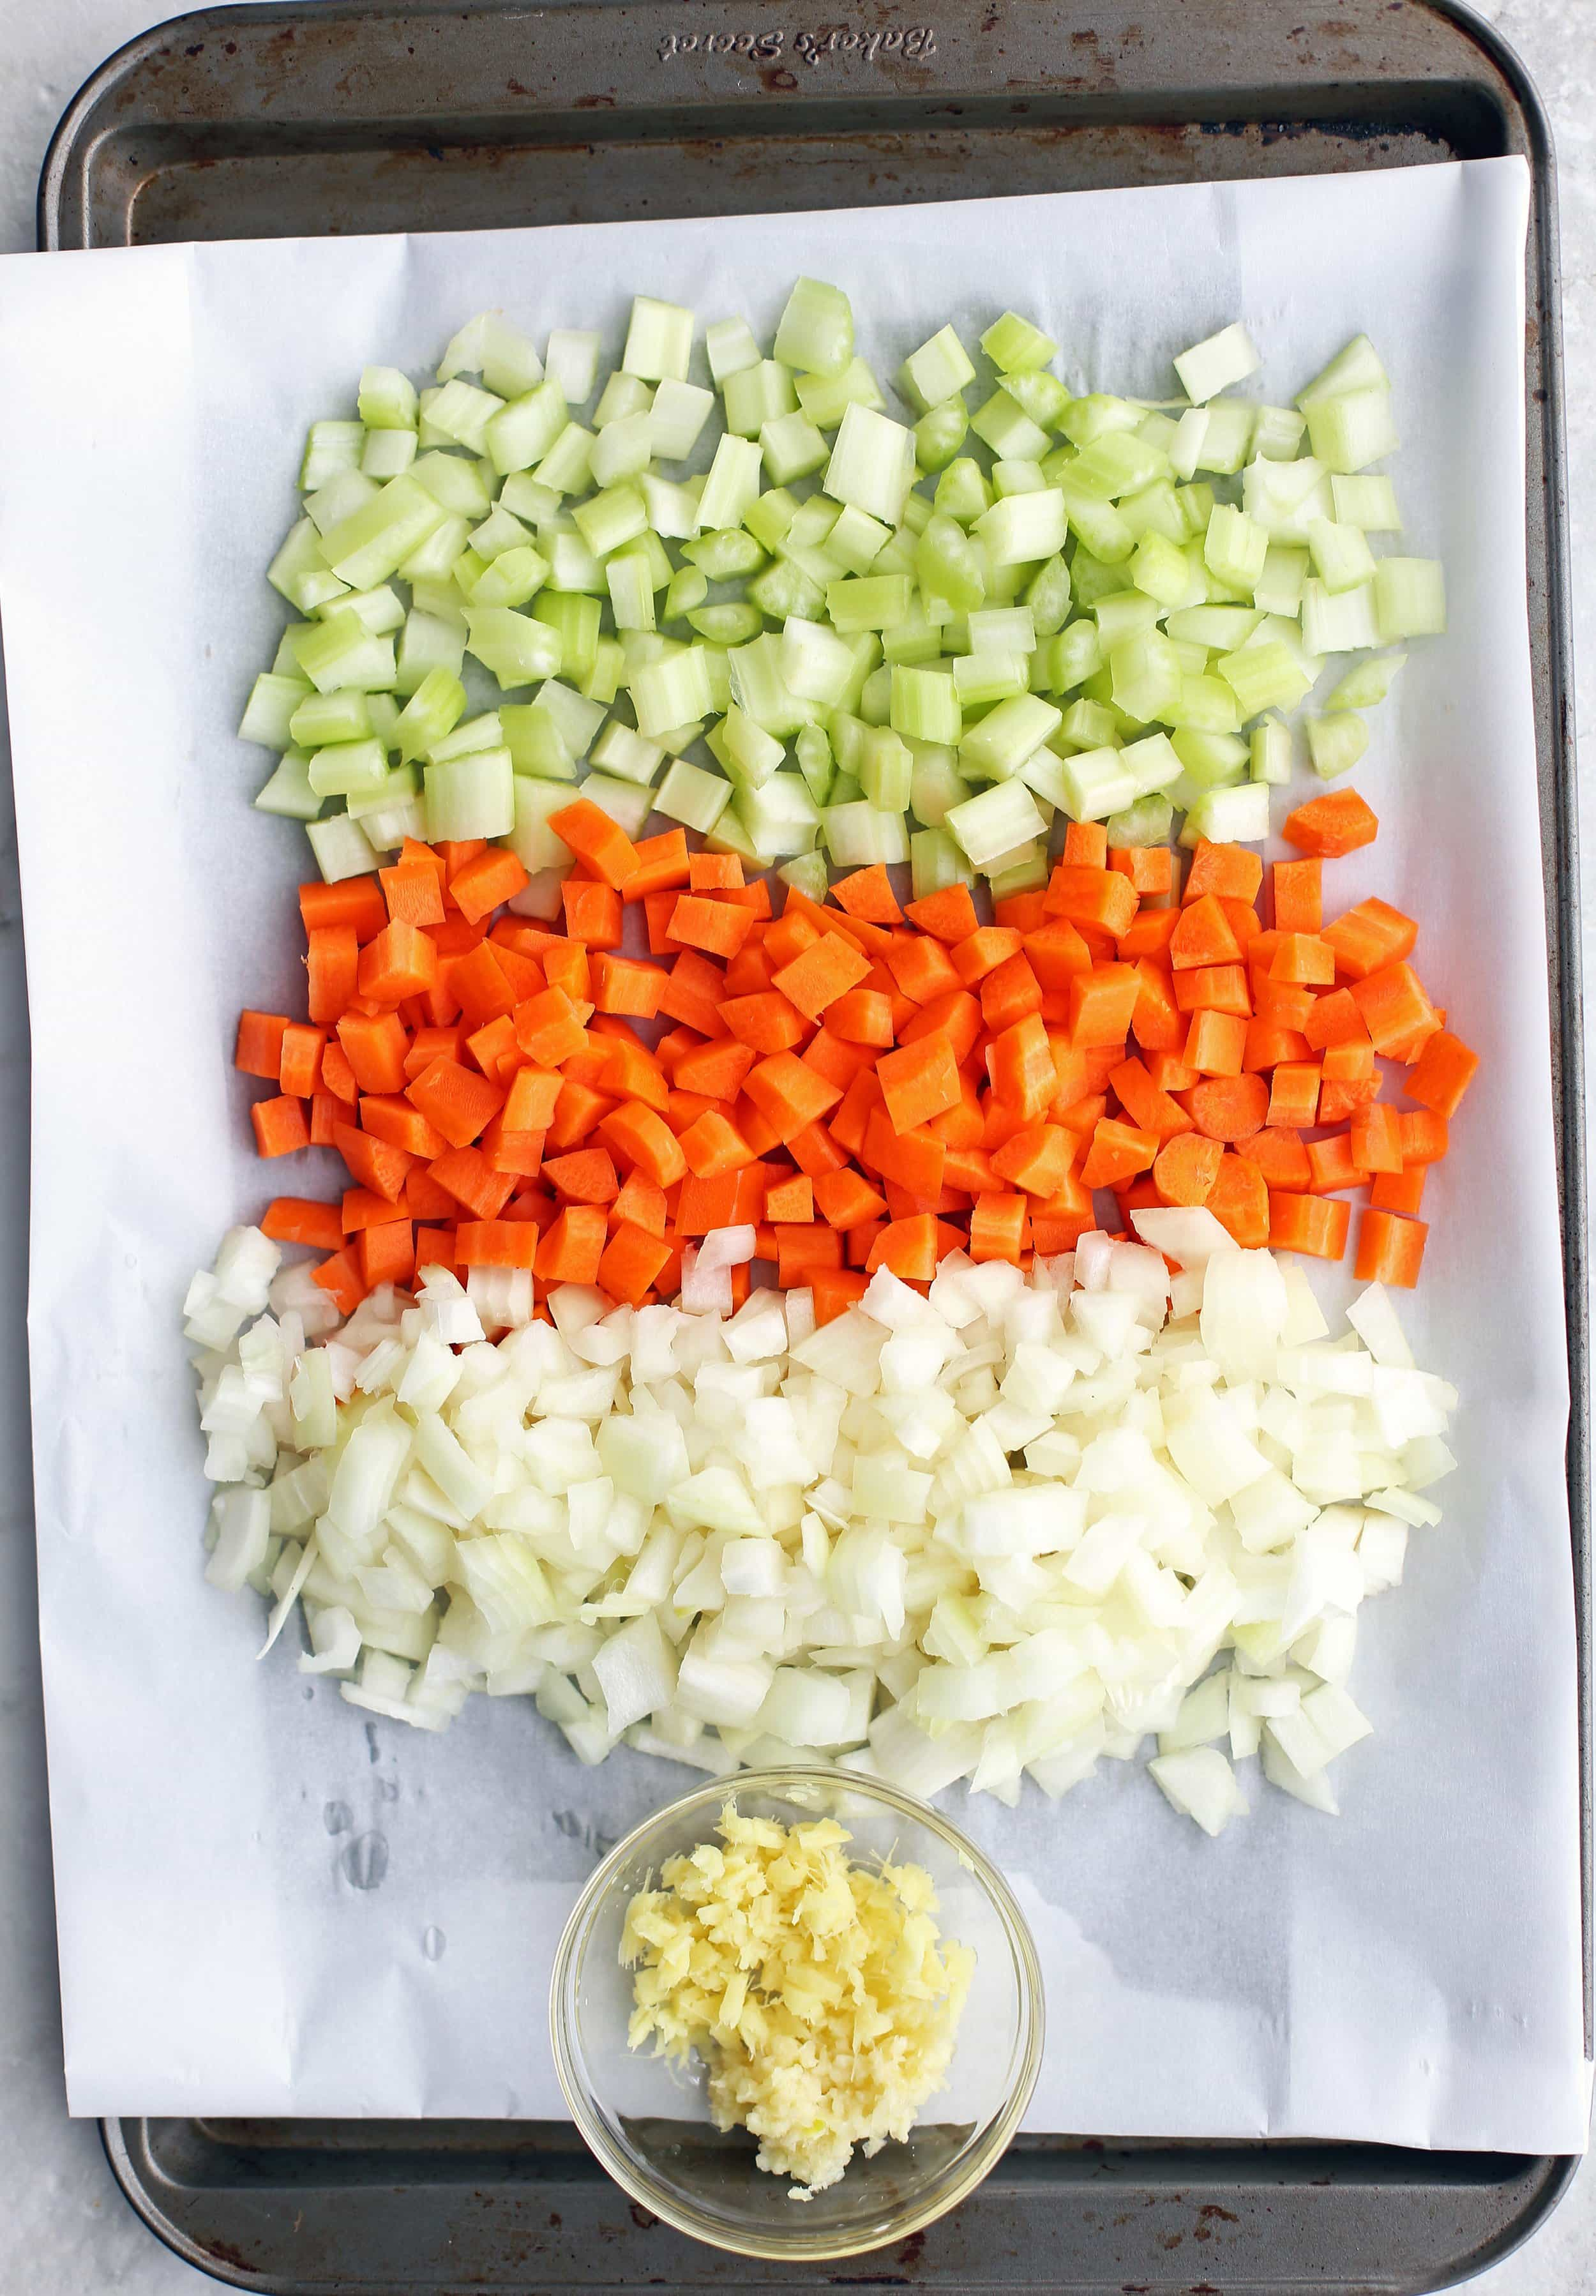 Diced onions, carrots, and celery in a baking sheet; minced garlic and ginger in a small bowl.